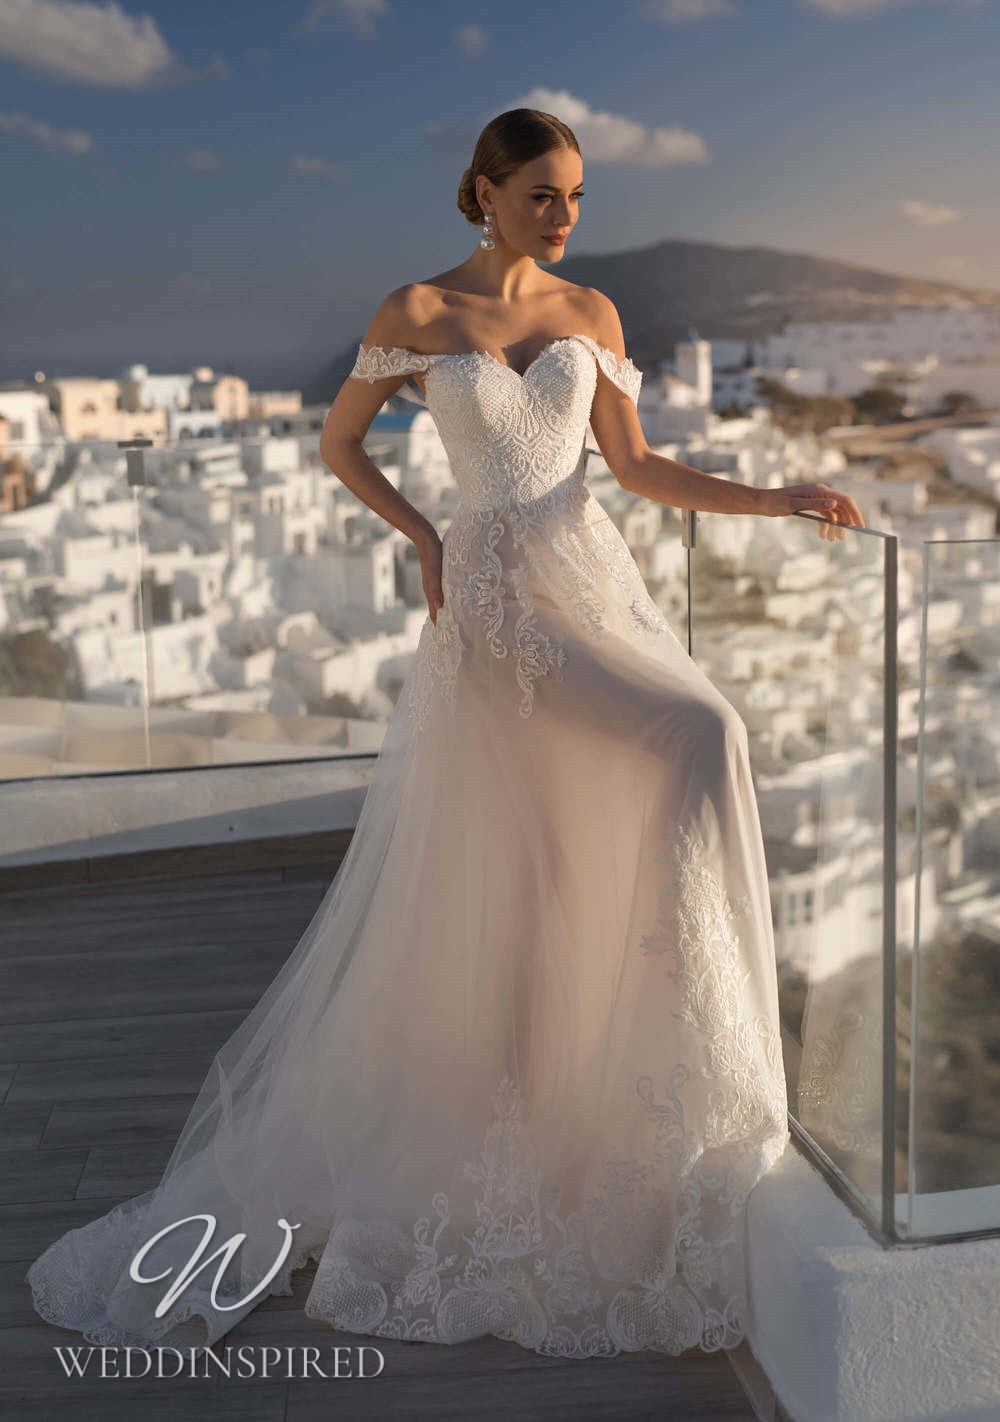 A Blunny 2021 off the shoulder lace and tulle A-line wedding dress